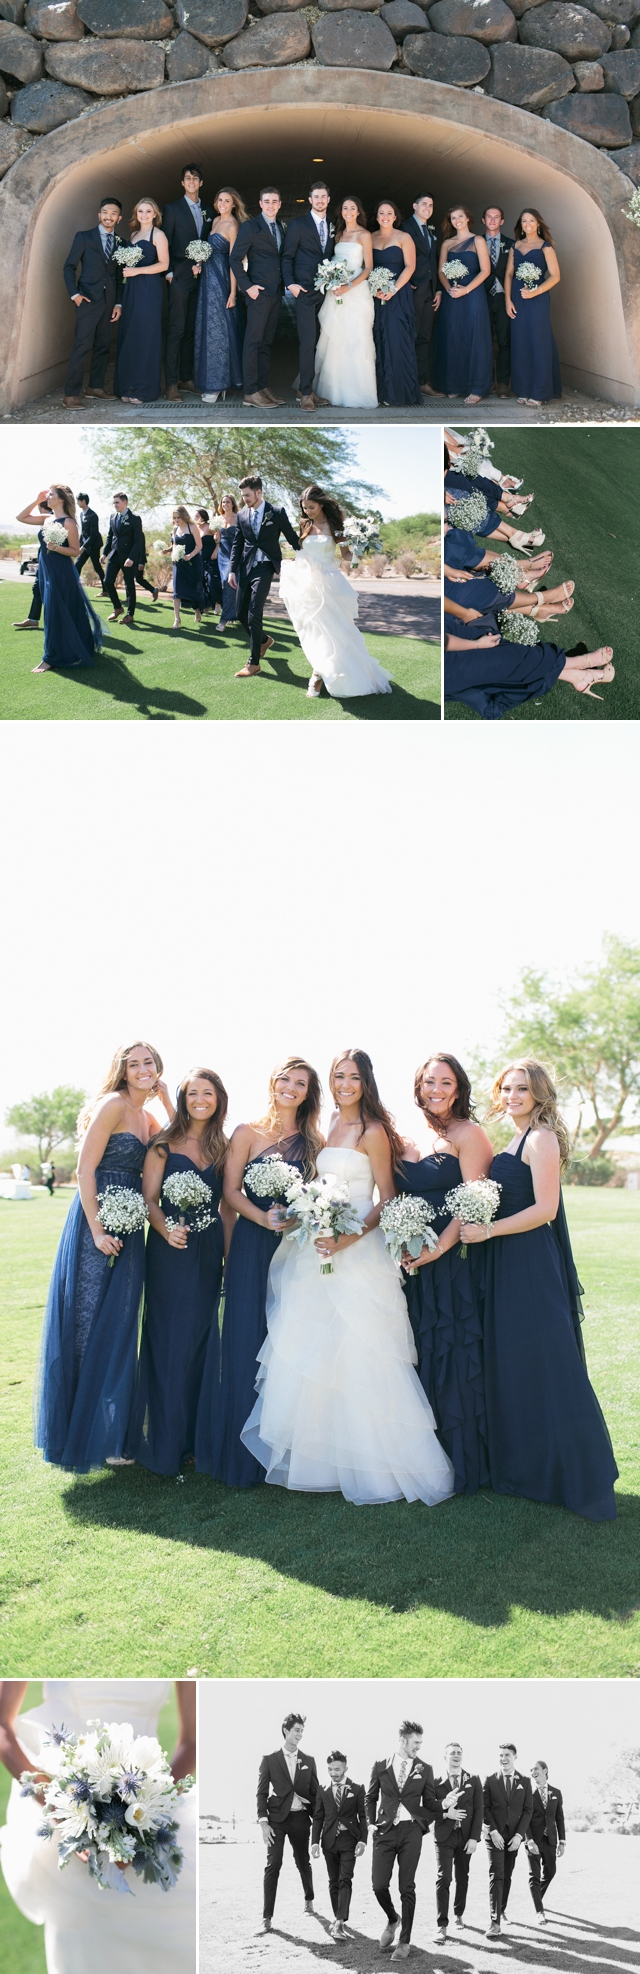 Navy Bridesmaid Dresses Bridal Party Revere Golf Course Royal Blue Bridal Party by Meg Ruth Photo